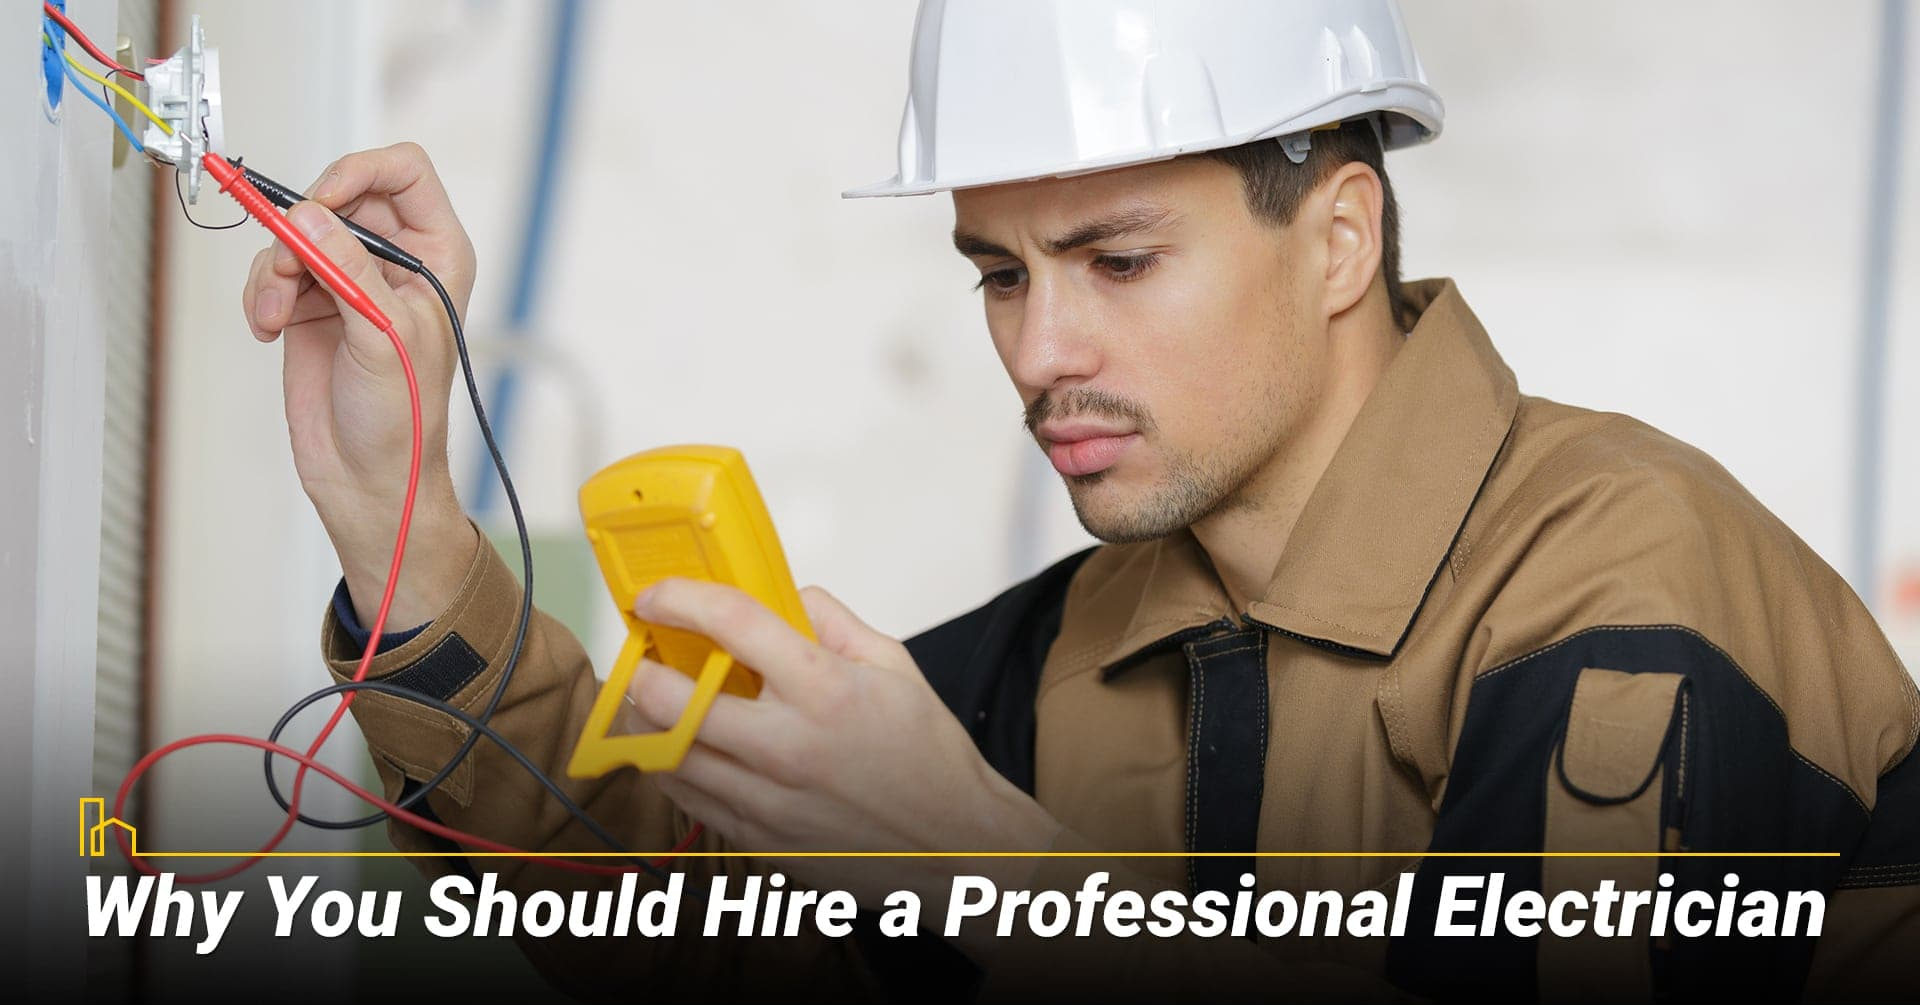 Why You Should Hire a Professional Electrician, reasons to hire a professional electrician